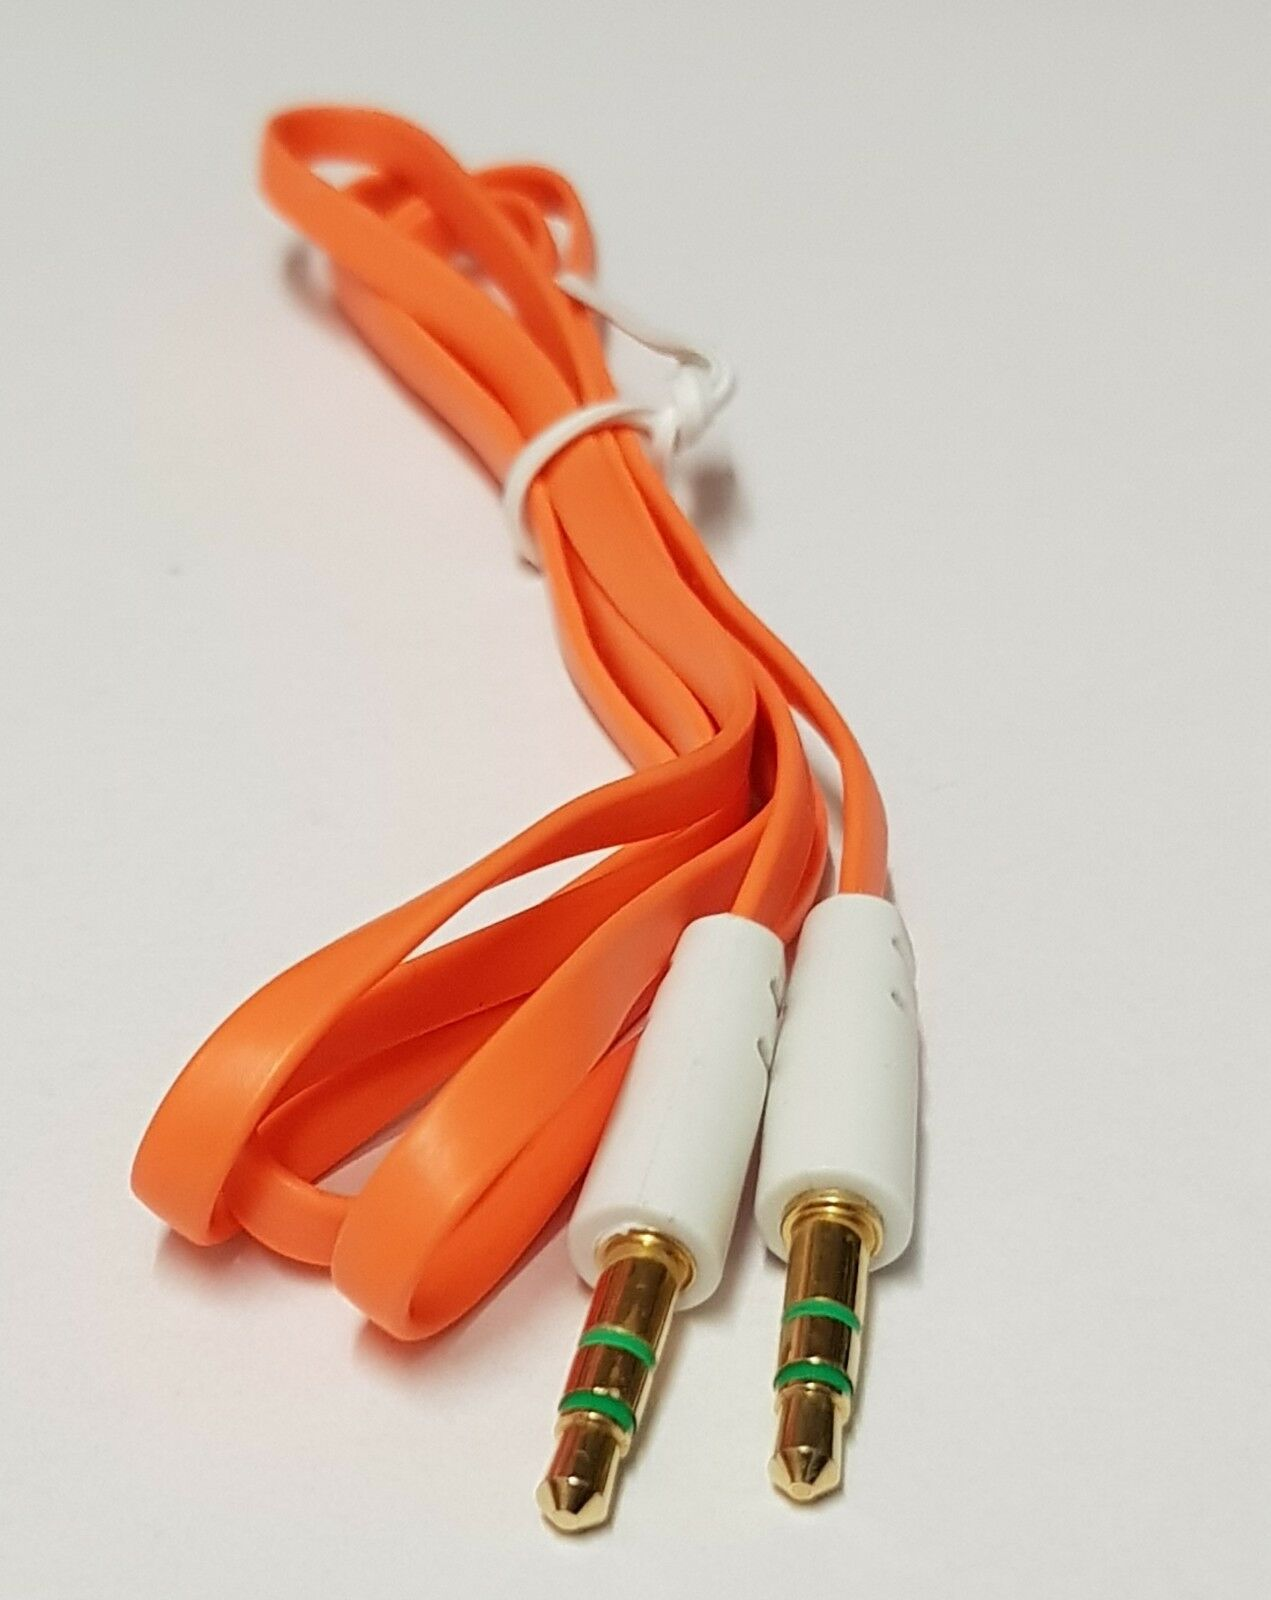 3.5mm TO 3.5mm CAR AUX AUDIO CABLE For iPhone Samsung LG Nokia iPod MP3 ORANGE